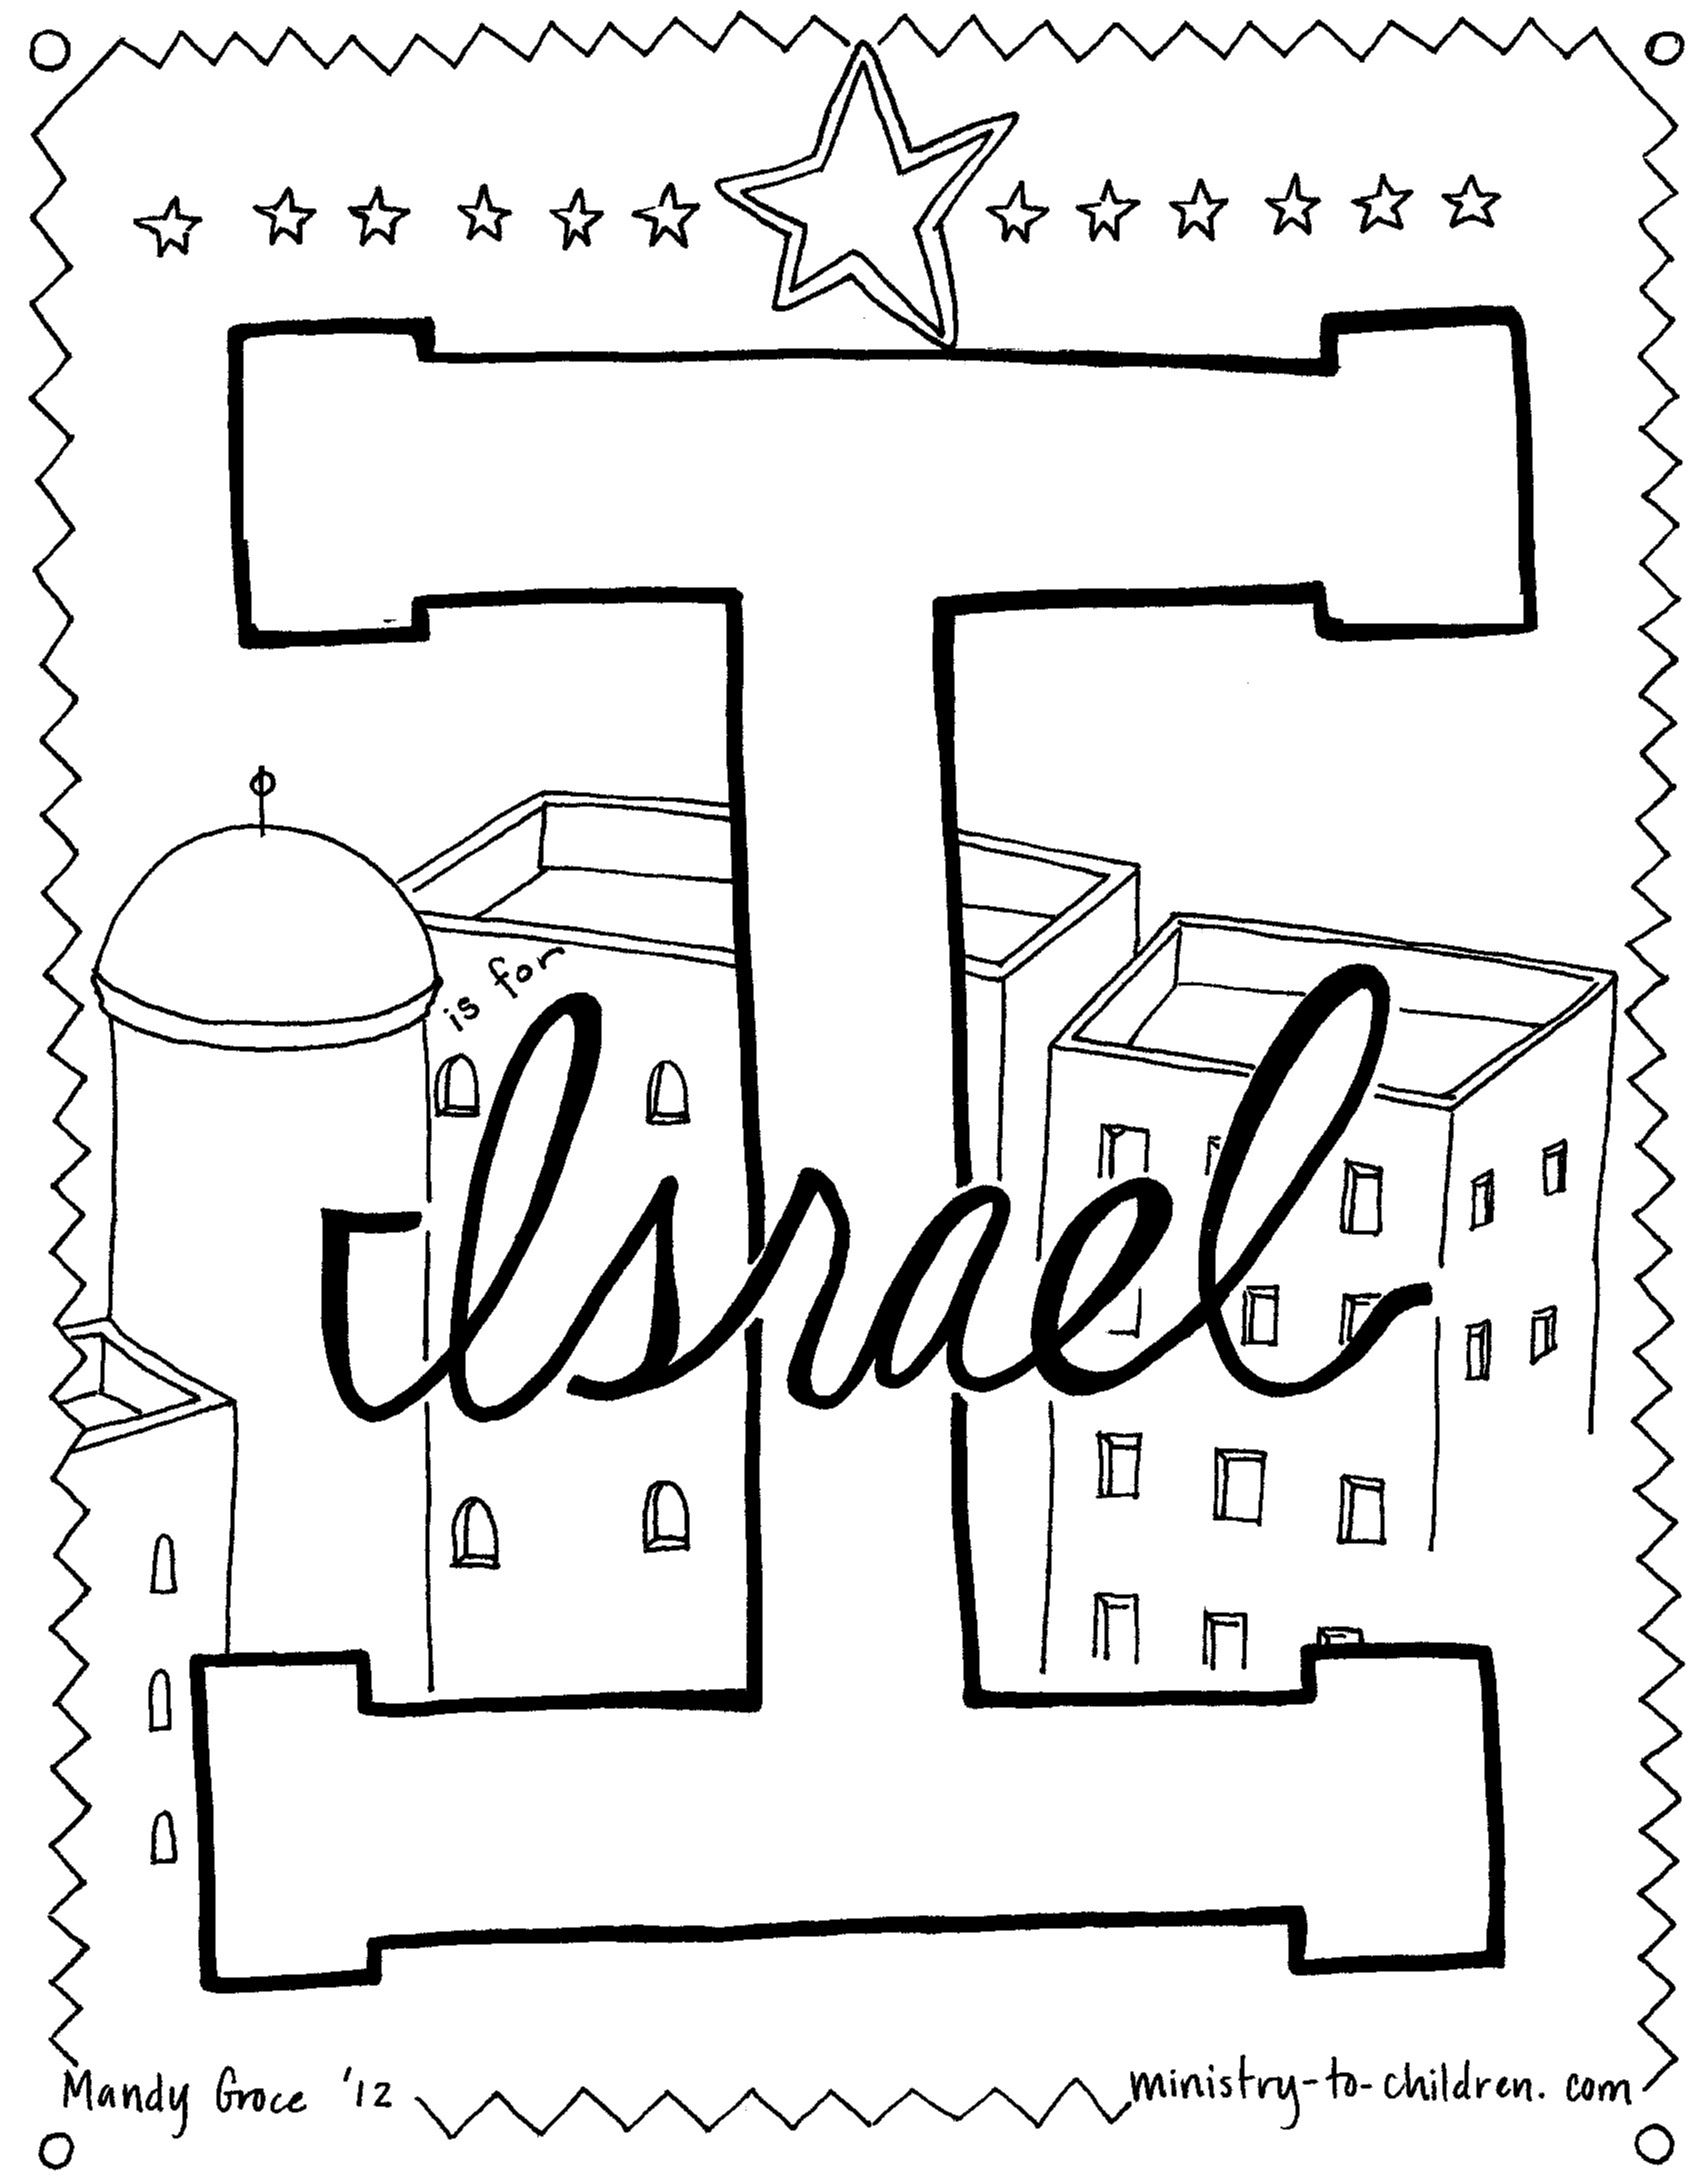 Mrs. Katz & Tush - I is for Israel coloring page | Christian coloring,  Bible school crafts, Jewish crafts